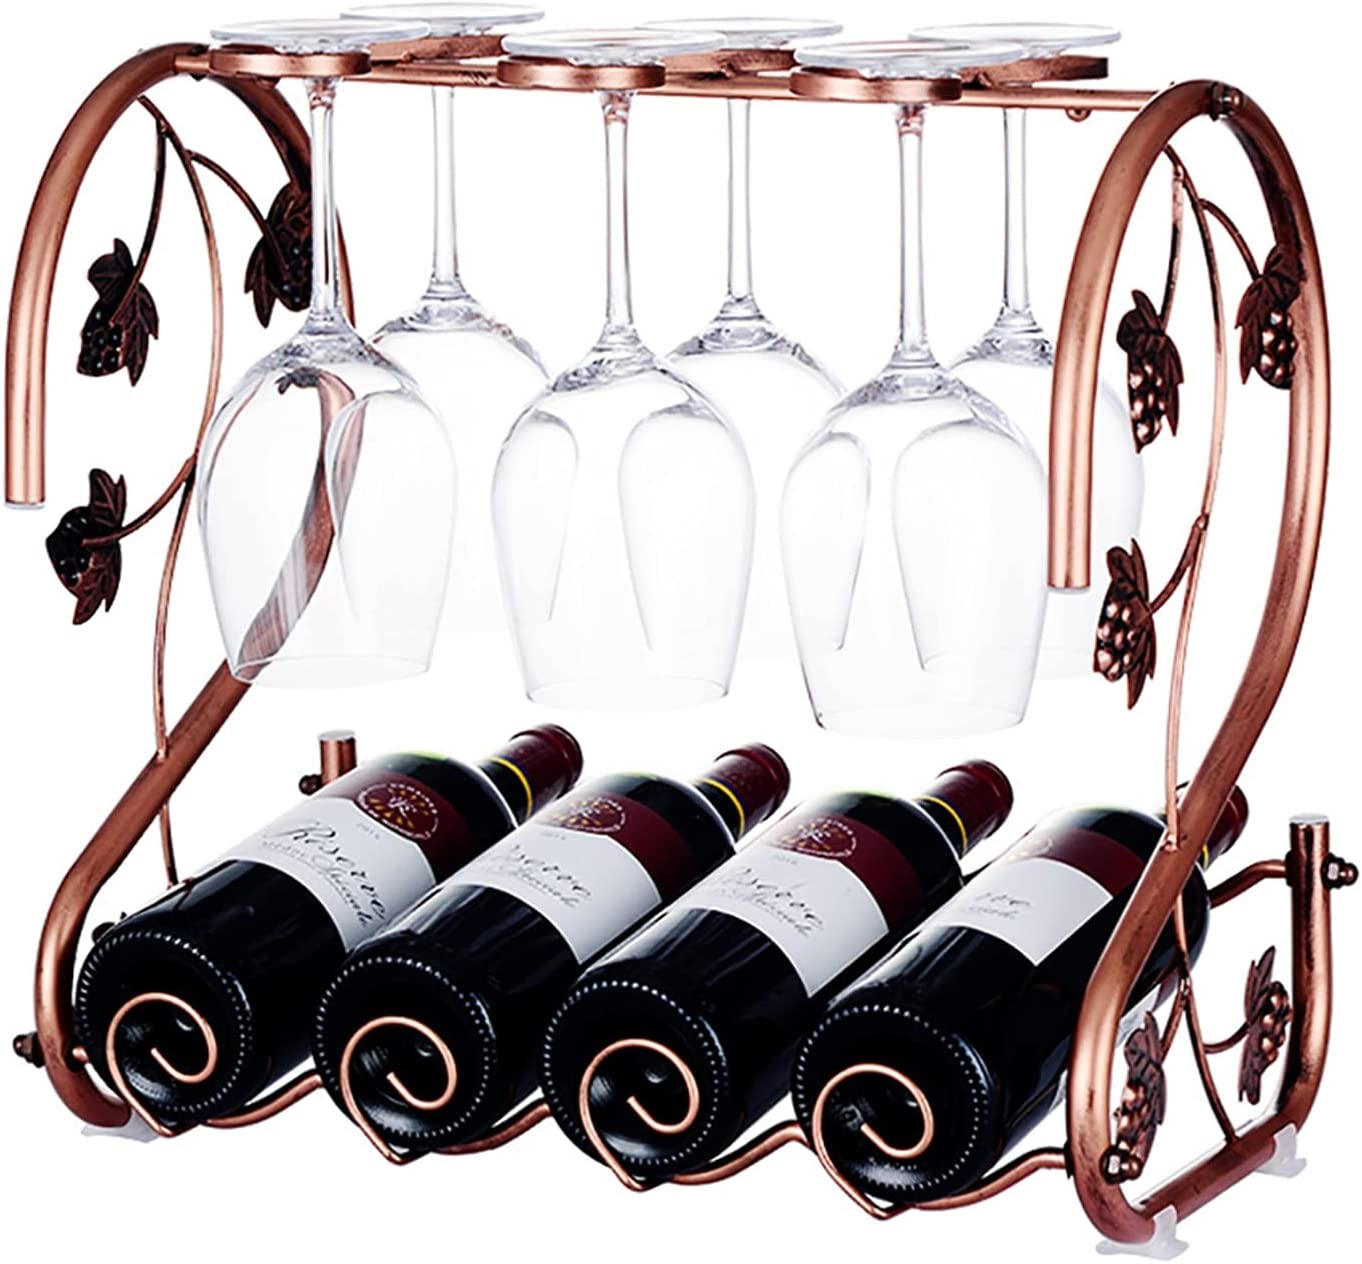 Lubinr Independent Wall Hanging Universal rac Cheap mail order sales Vintage Wine Financial sales sale Bronz